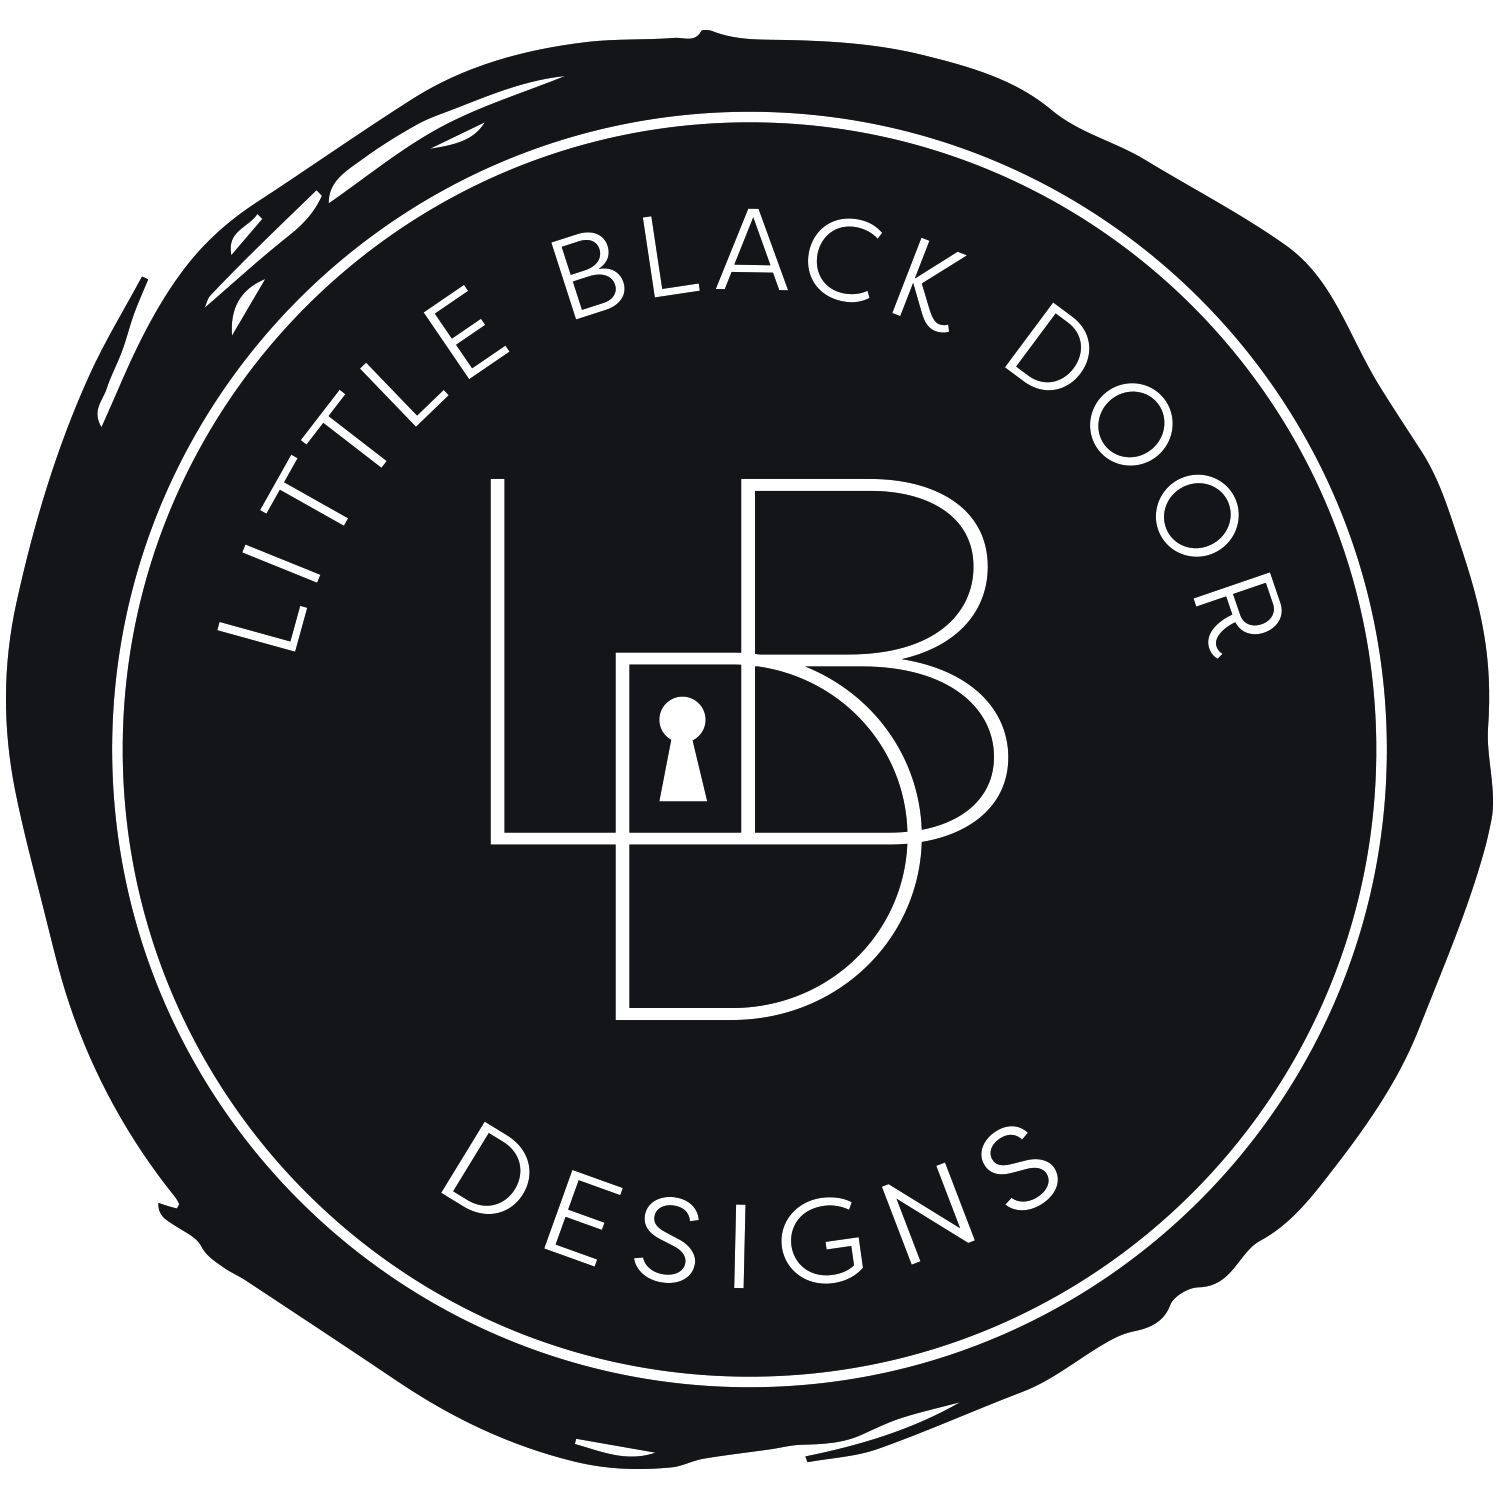 Little Black Door Designs